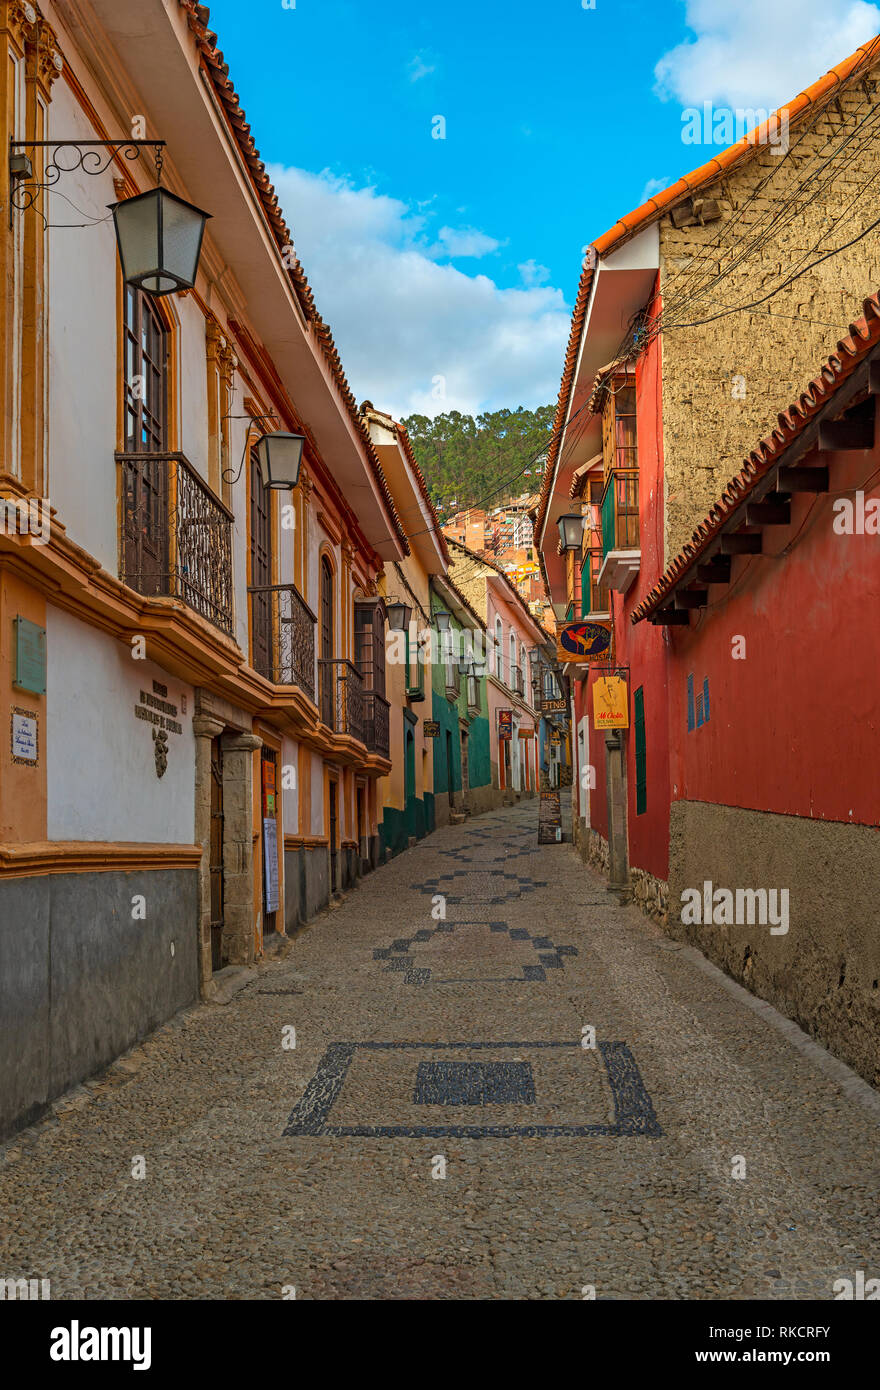 Vertical photograph of the beautiful Jaen street with its colorful Spanish colonial architecture in the historic city center of La Paz, Bolivia. - Stock Image